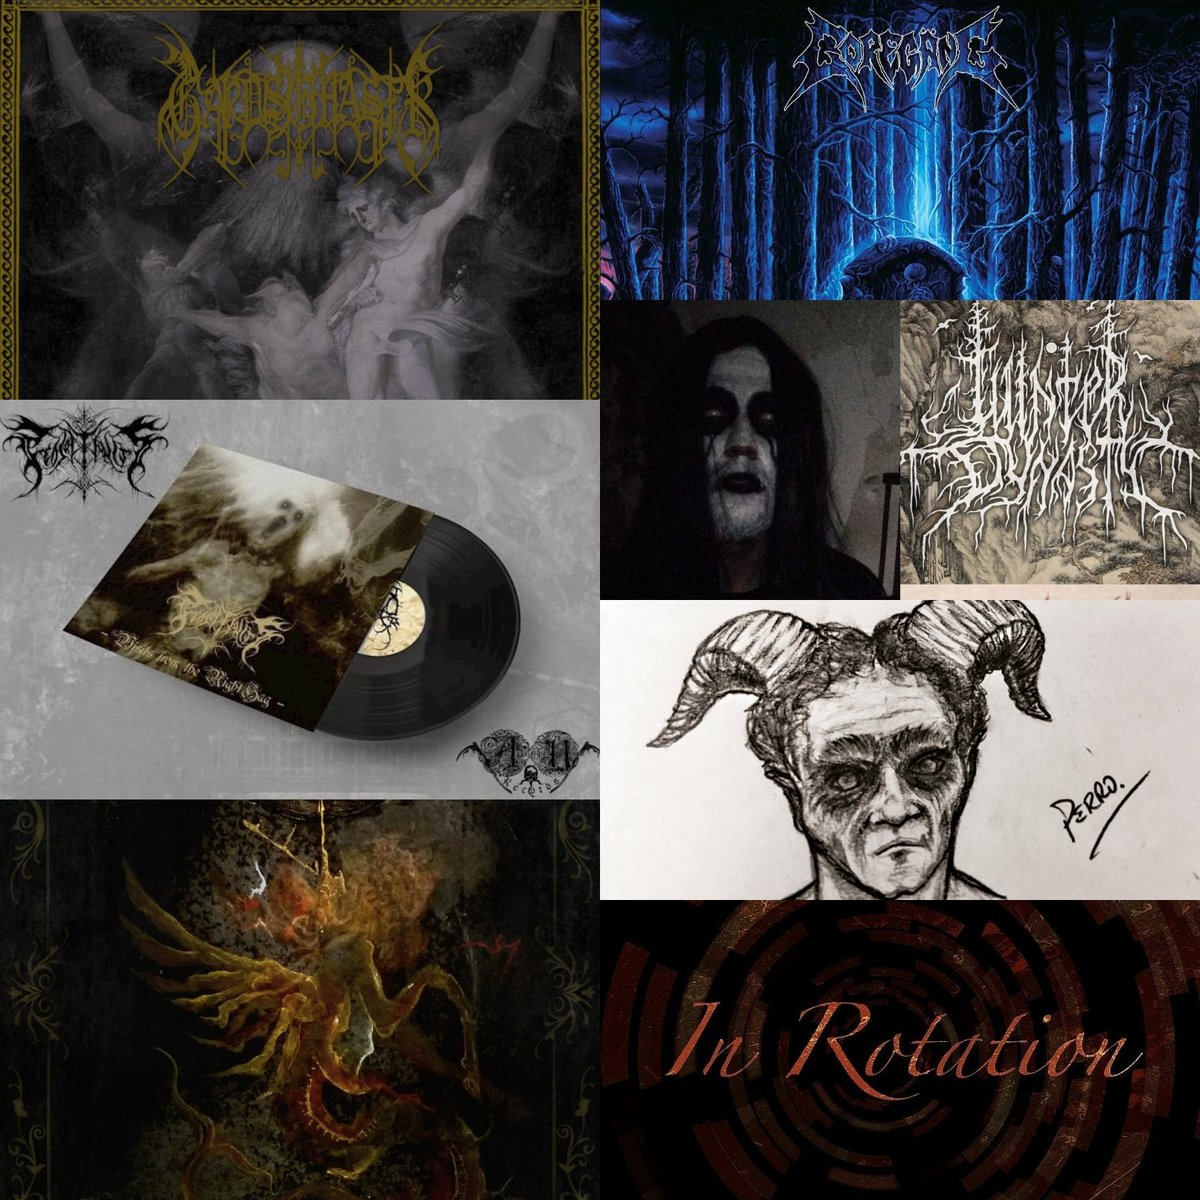 Monday #Gardsghastr review Tuesday #Goregäng review Wednesday @SFD_DSBM interview Thursday #TheProjectionist #ExclusiveStream  Friday #TheRiffsMustFlow article Saturday #Concilivm review  Sunday #InRotation article #WeAreBlessedAltarZine #TheZineSupportingTheUnderground<br>http://pic.twitter.com/zCK0EGxJK0